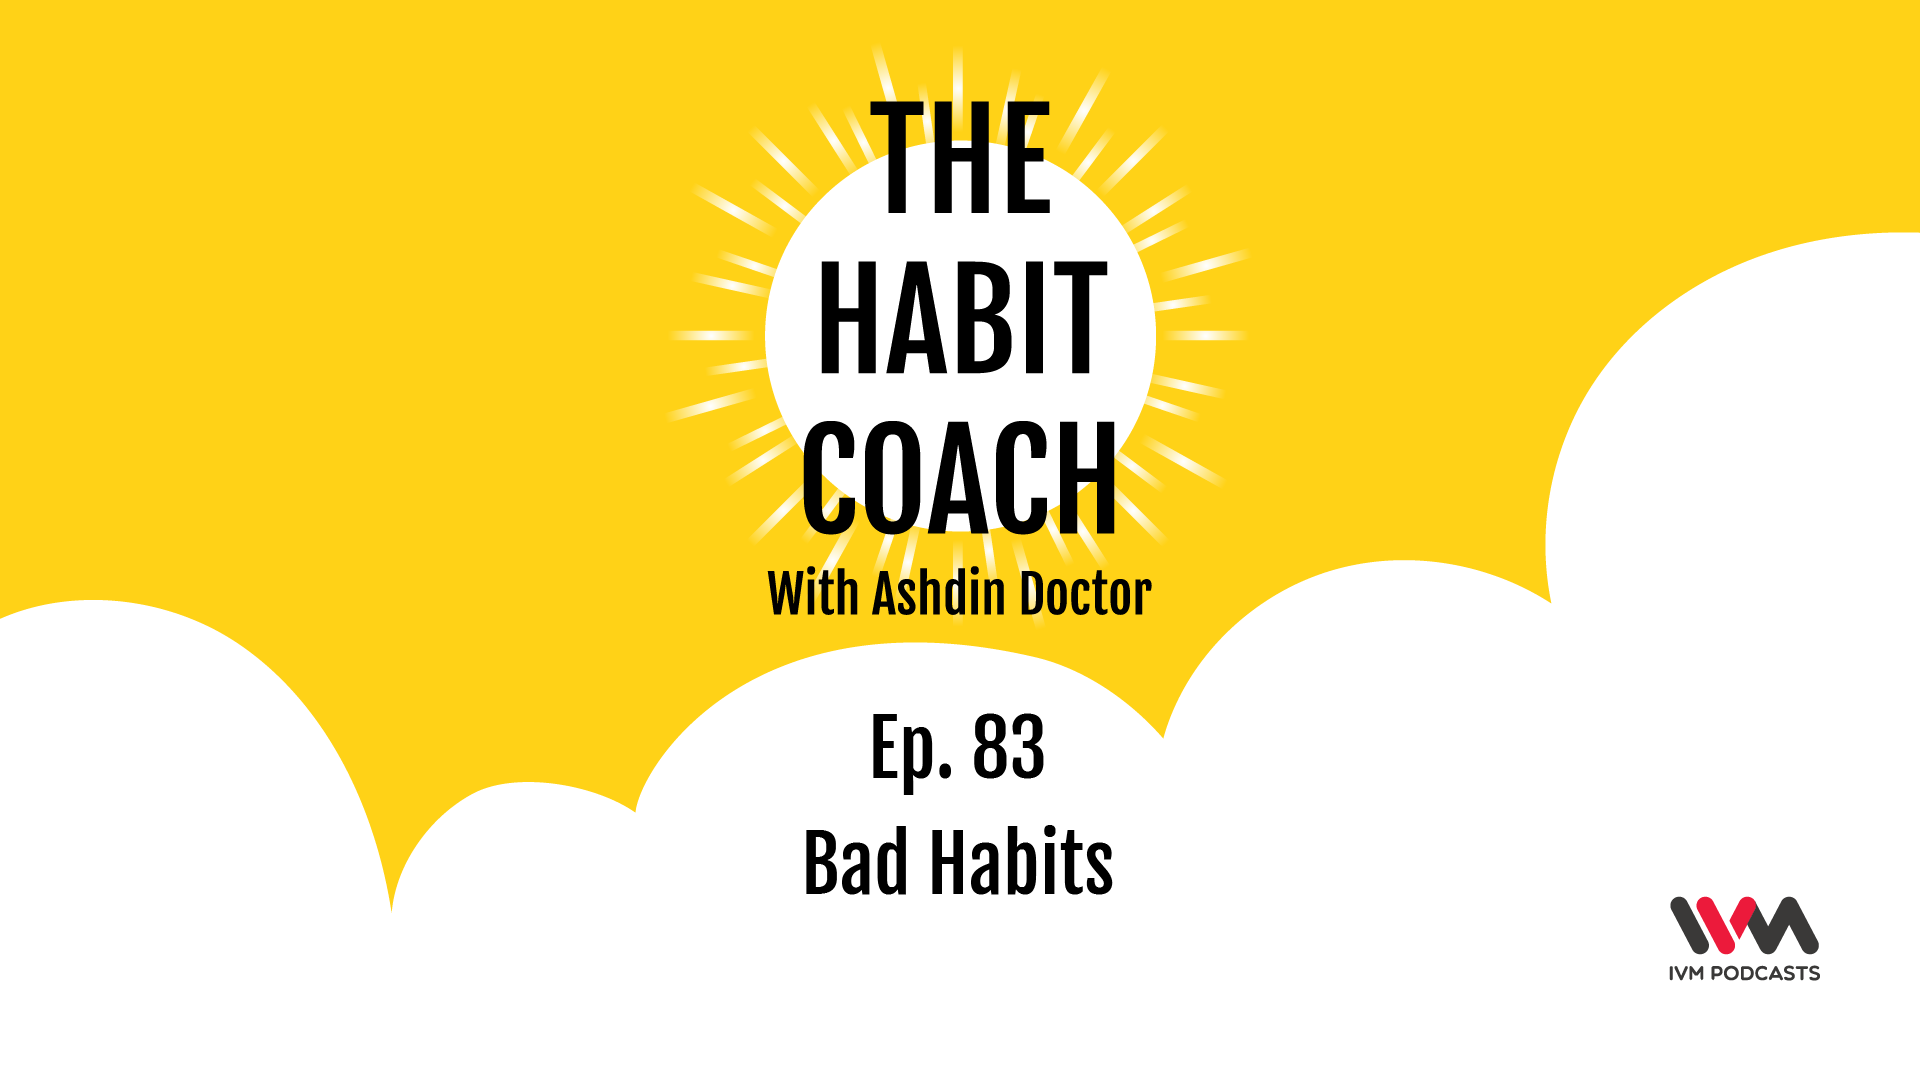 TheHabitCoachEpisode83.png